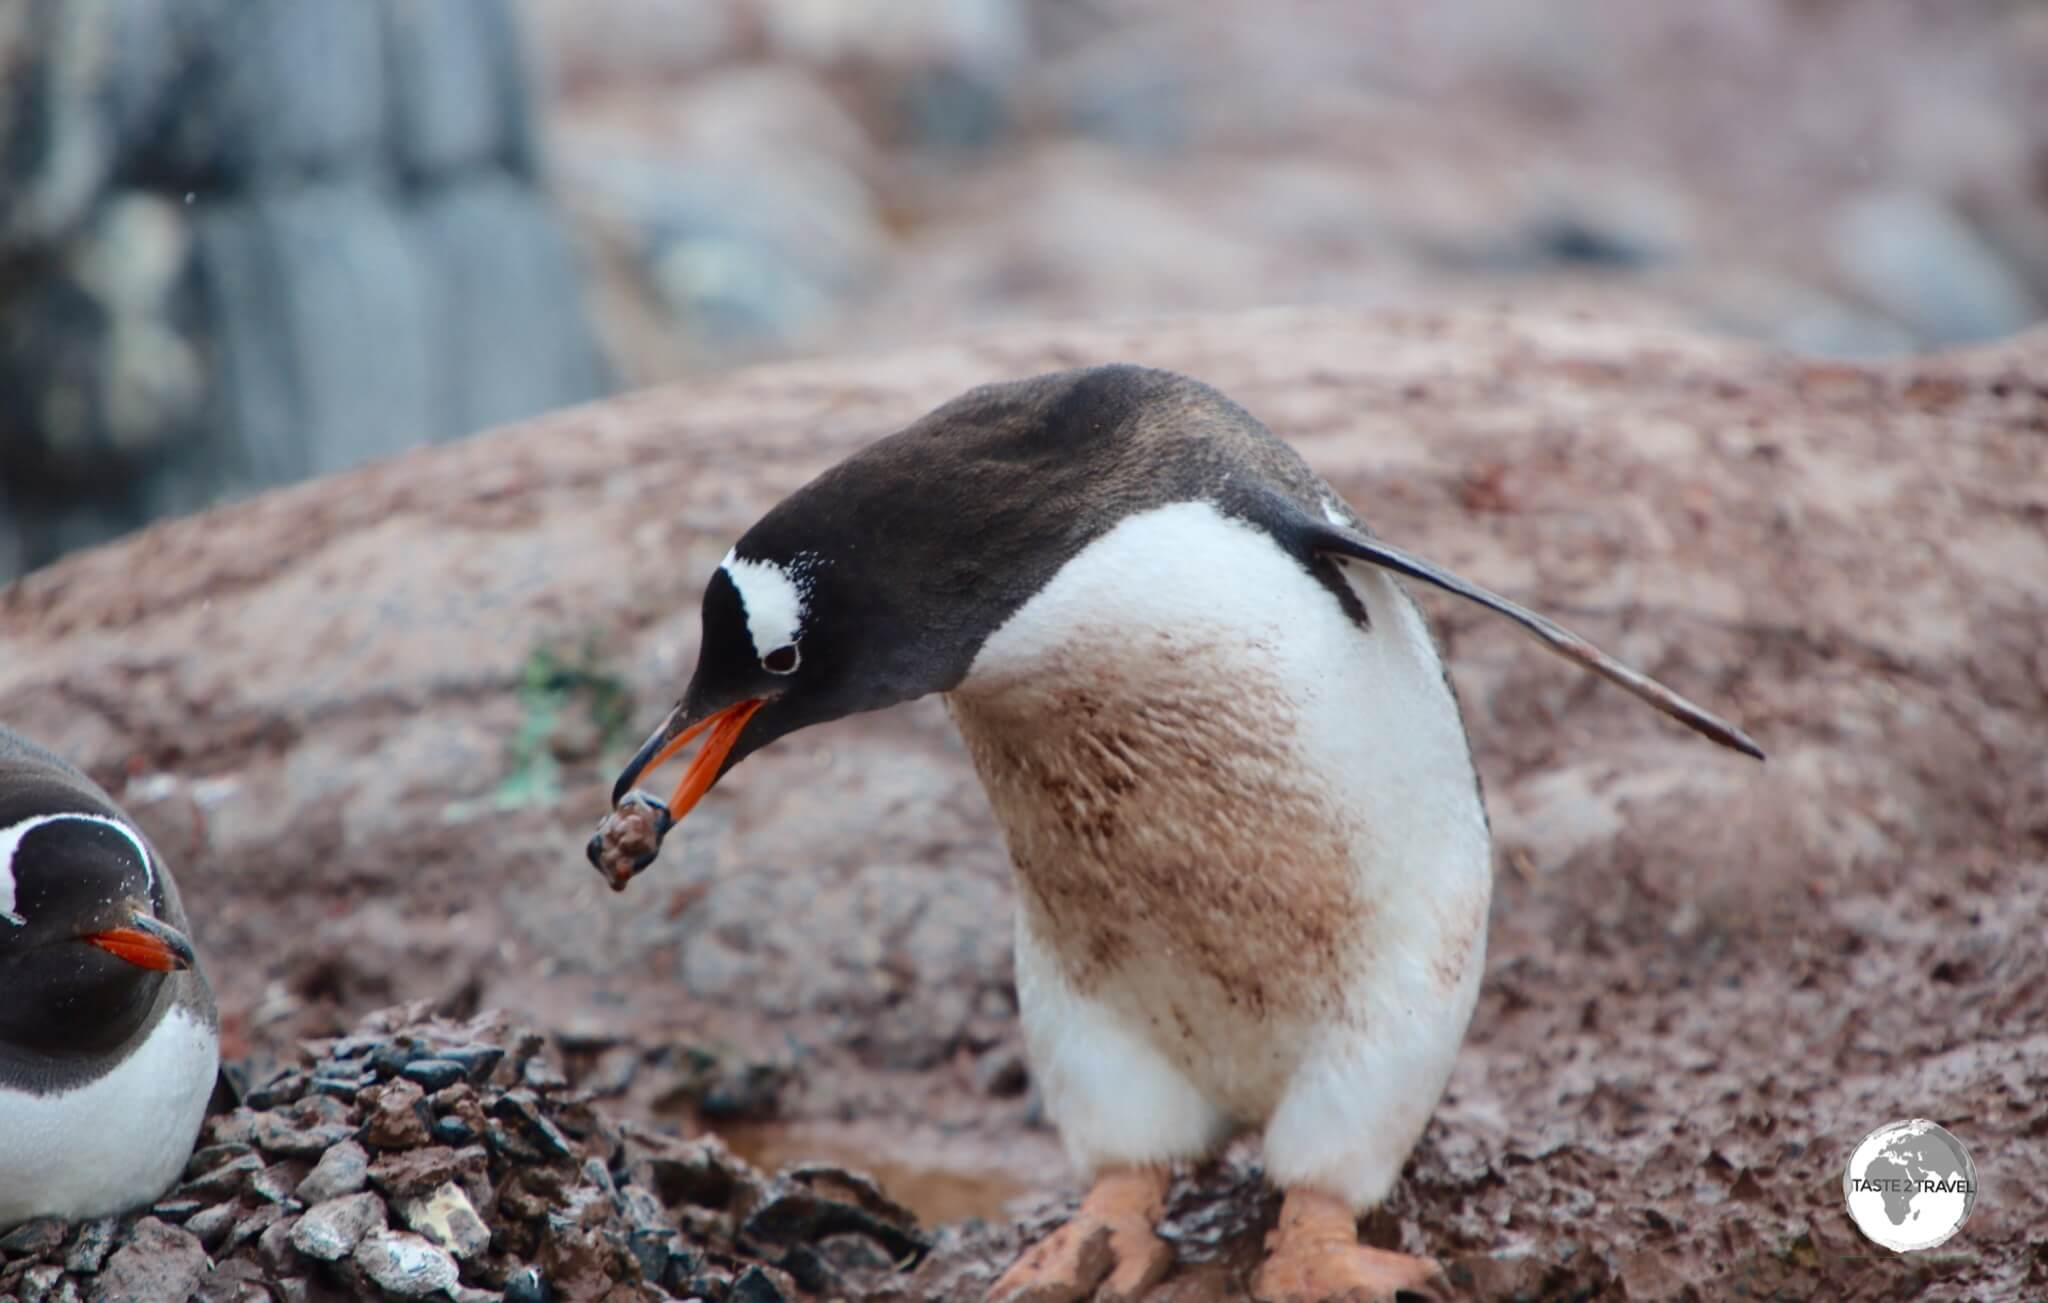 A male Gentoo penguin at Port Lockroy seeks 'favour' from a female by offering her a pebble for her nest - a pebble he stole from the neighbouring nest.